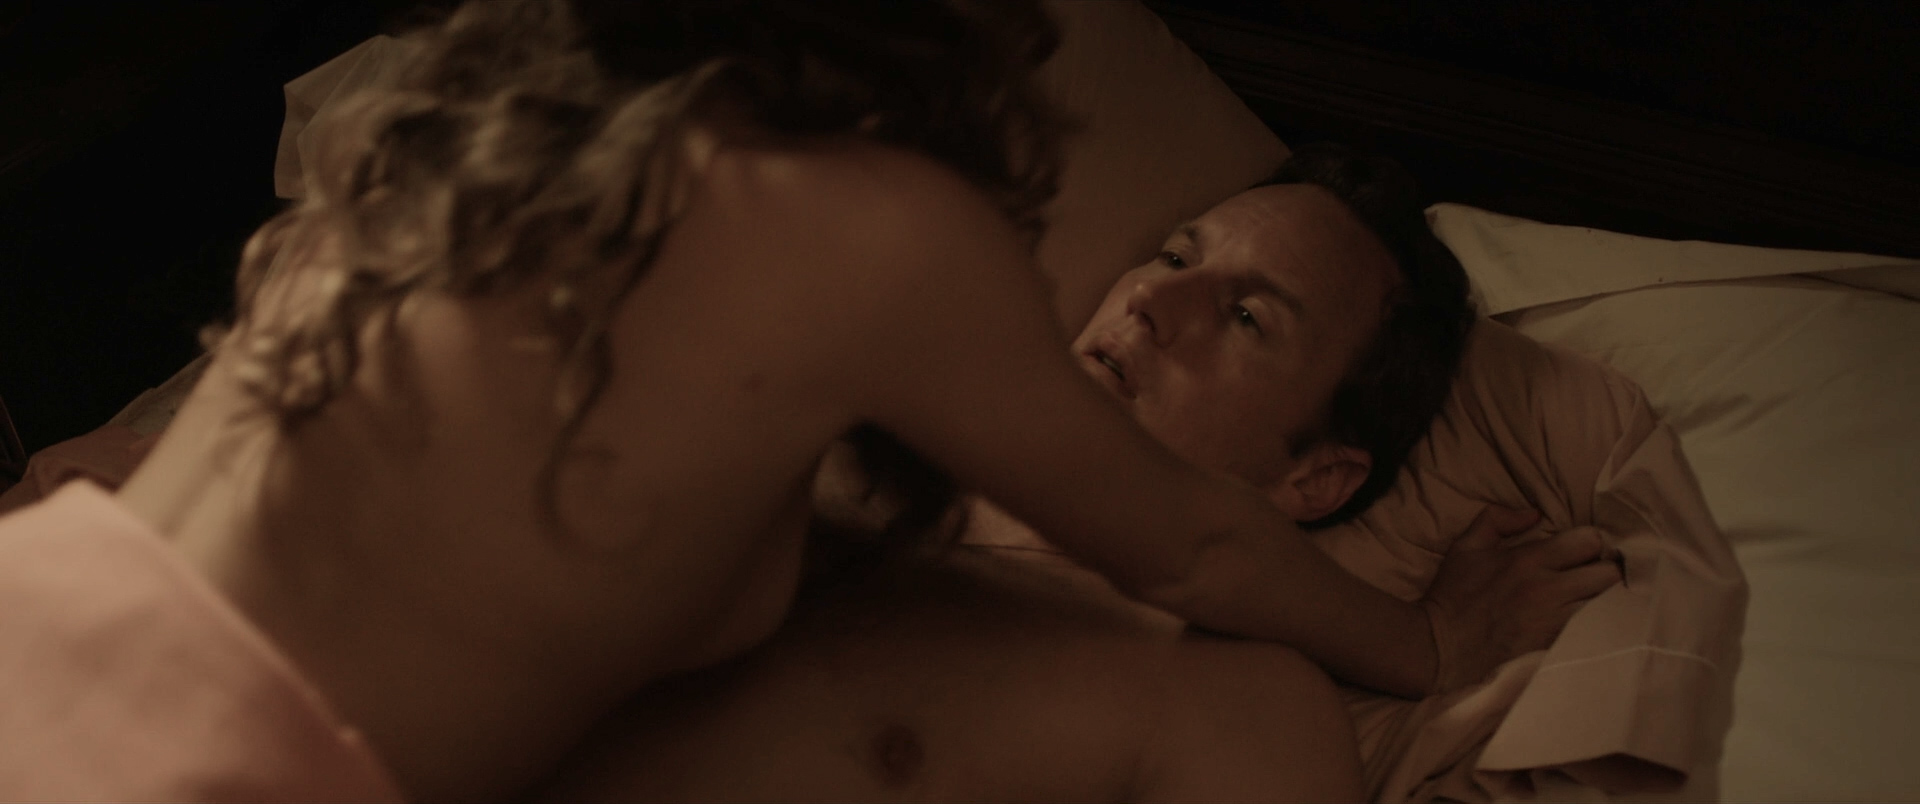 Lili Simmons nude and sex riding a dude - Bone Tomahawk (2015) HD 1080p BluRay (4)